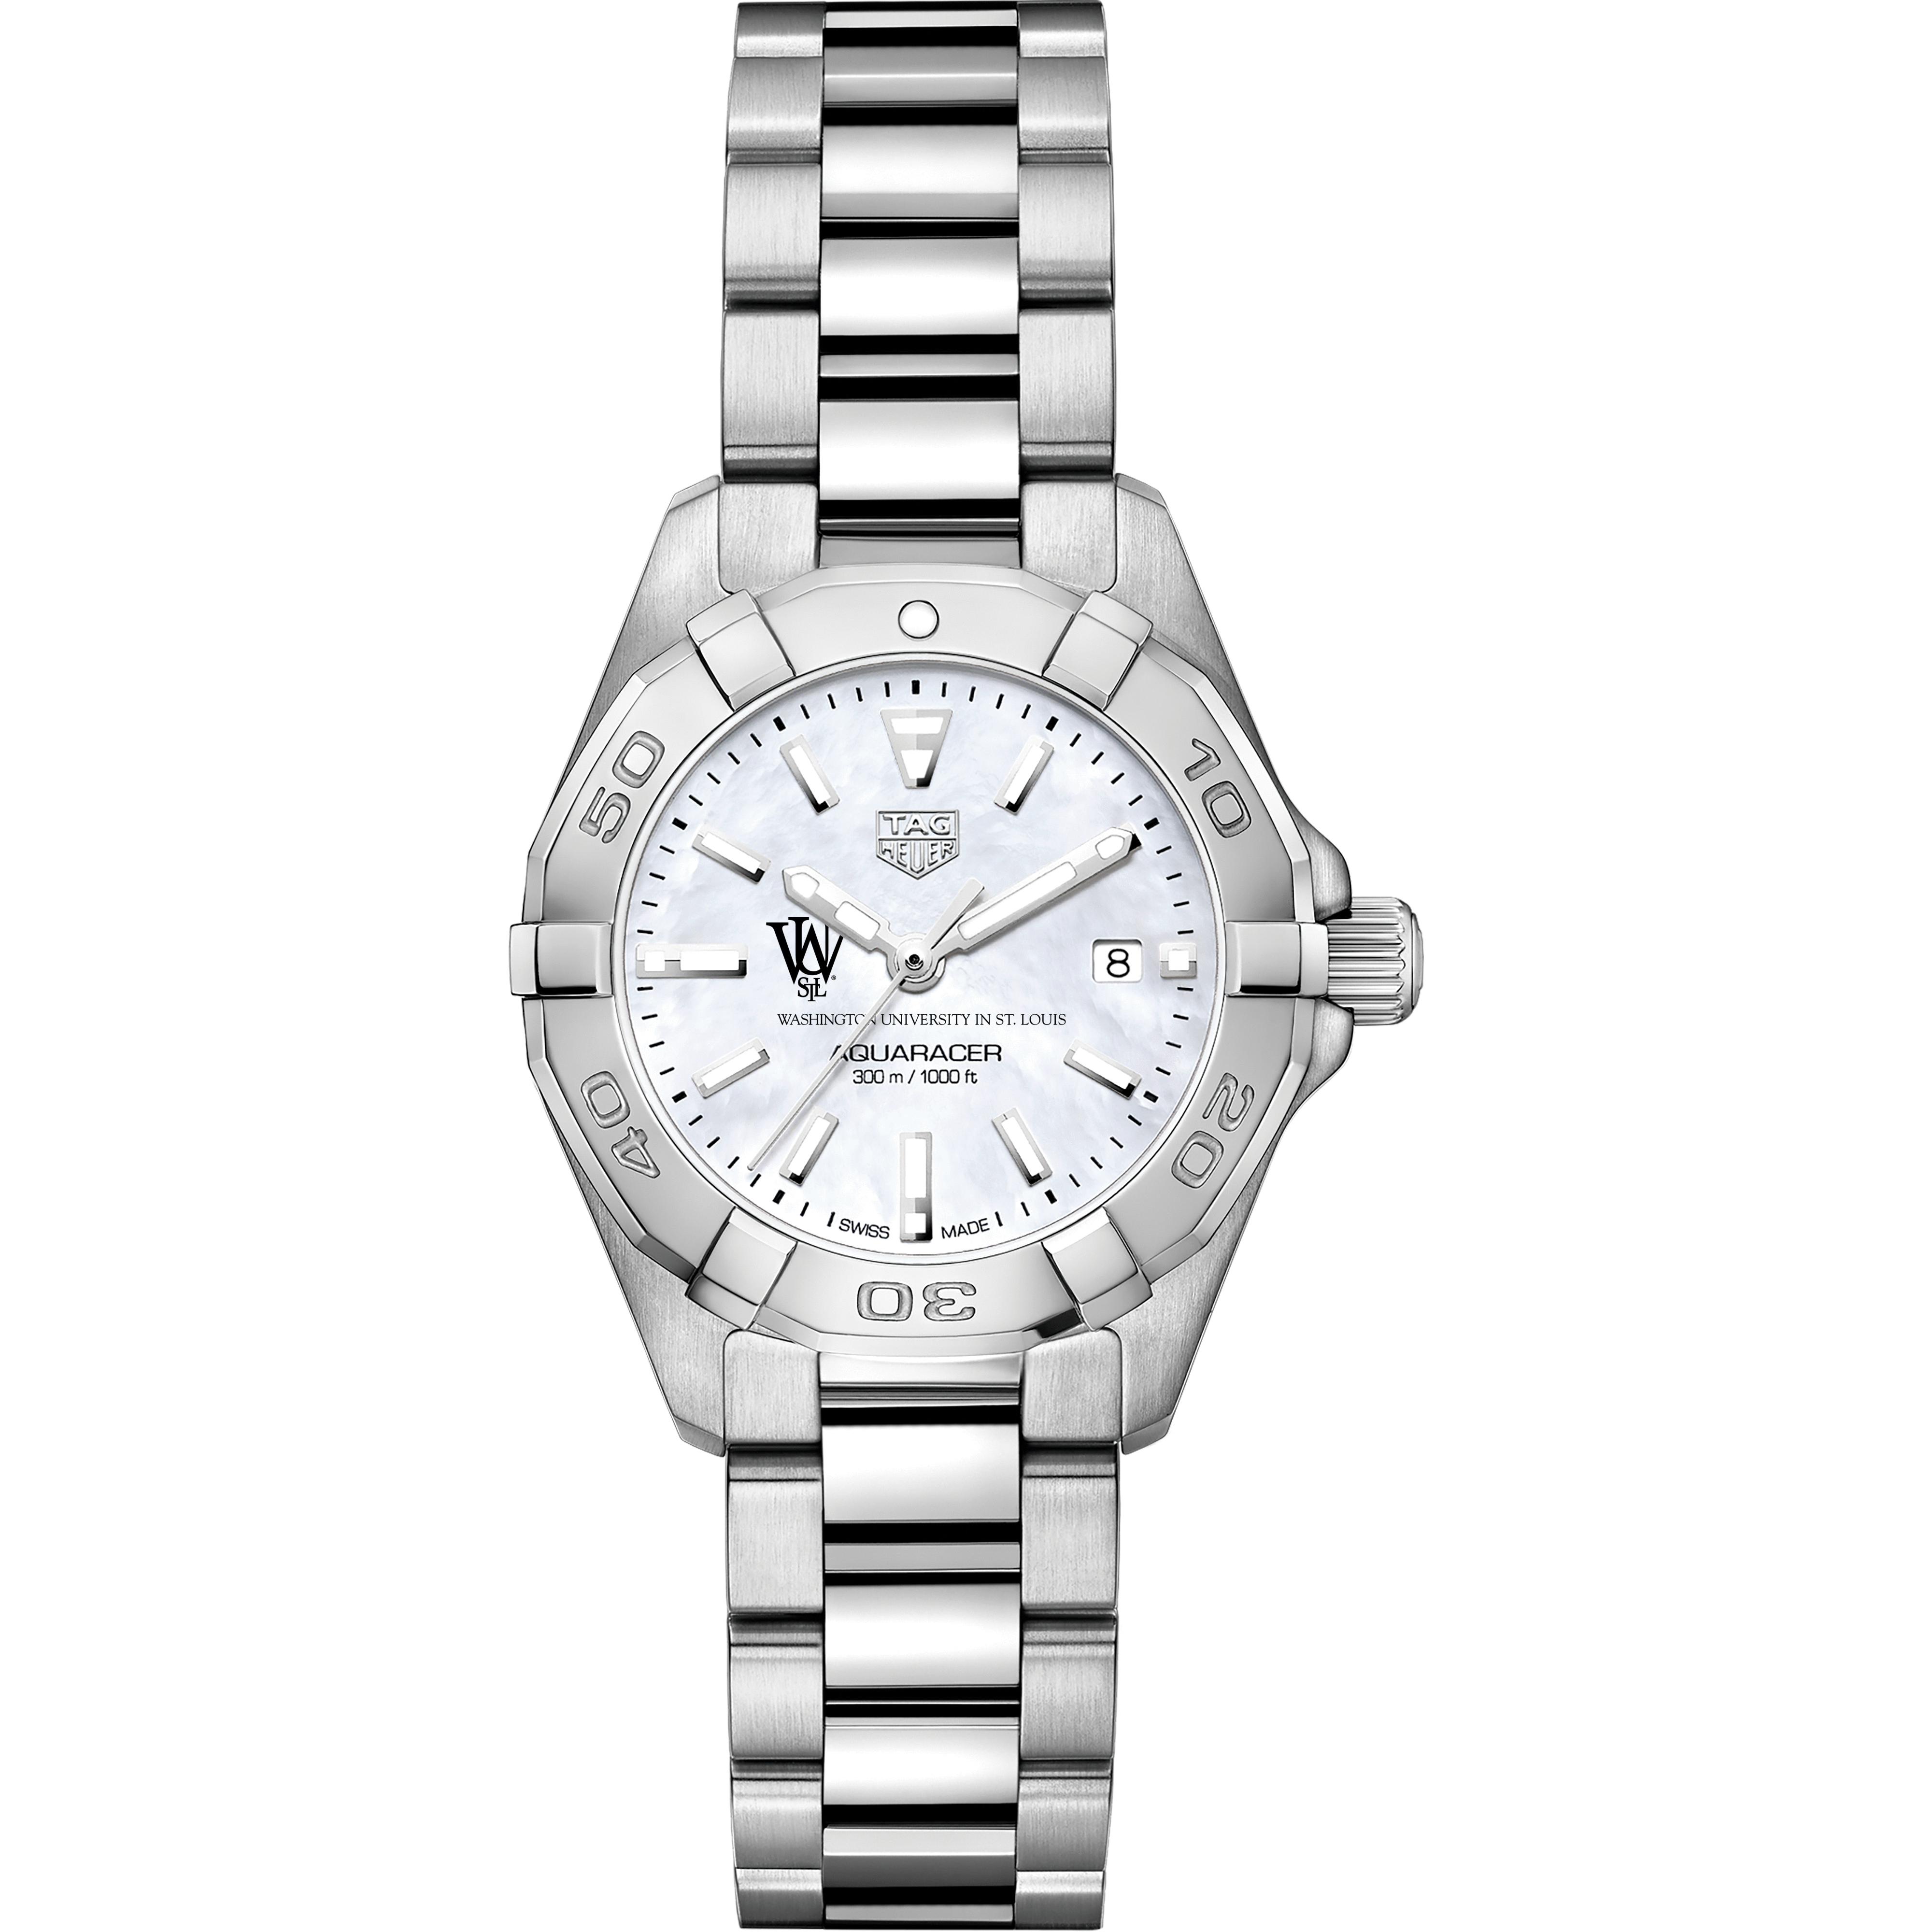 WUSTL Women's TAG Heuer Steel Aquaracer with MOP Dial - Image 2